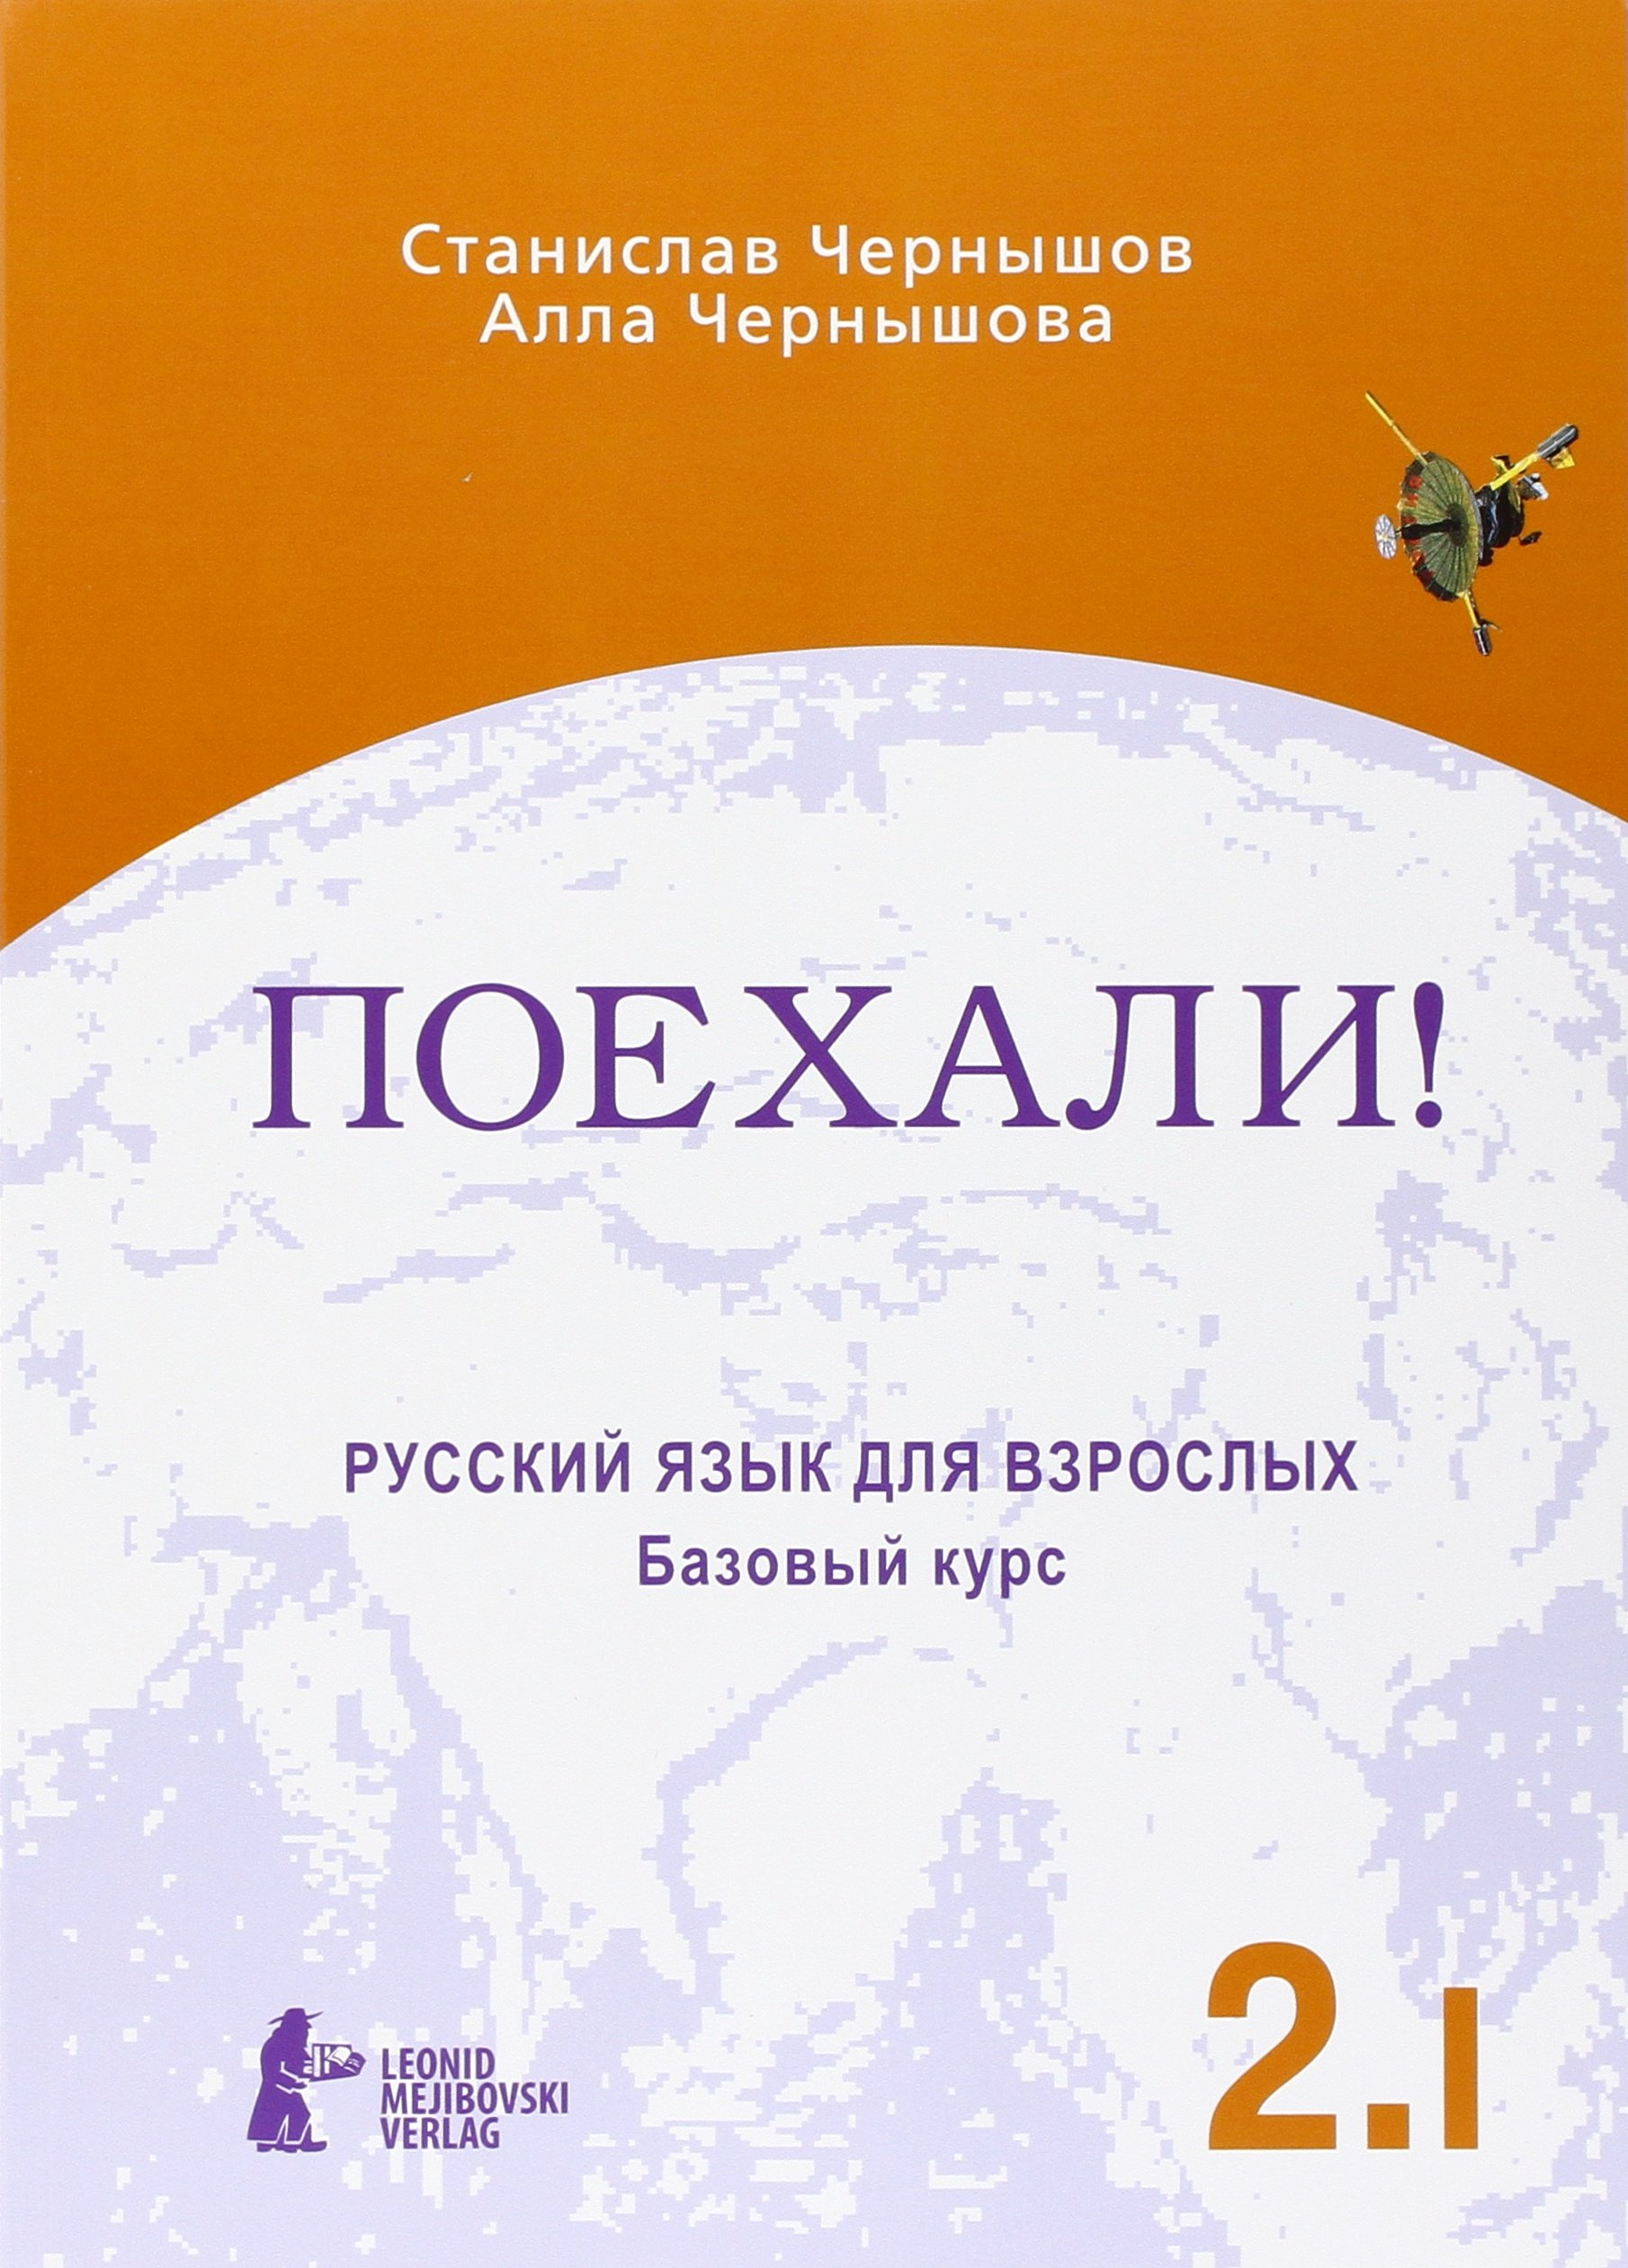 Poechali! / Let's go!: Russkij jazyk dlja vzroslych. Cast 2. Tom 1. Bazovyj kurs. Ucebnik / Russian language for adults. Part 2. Volume 1. A textbook